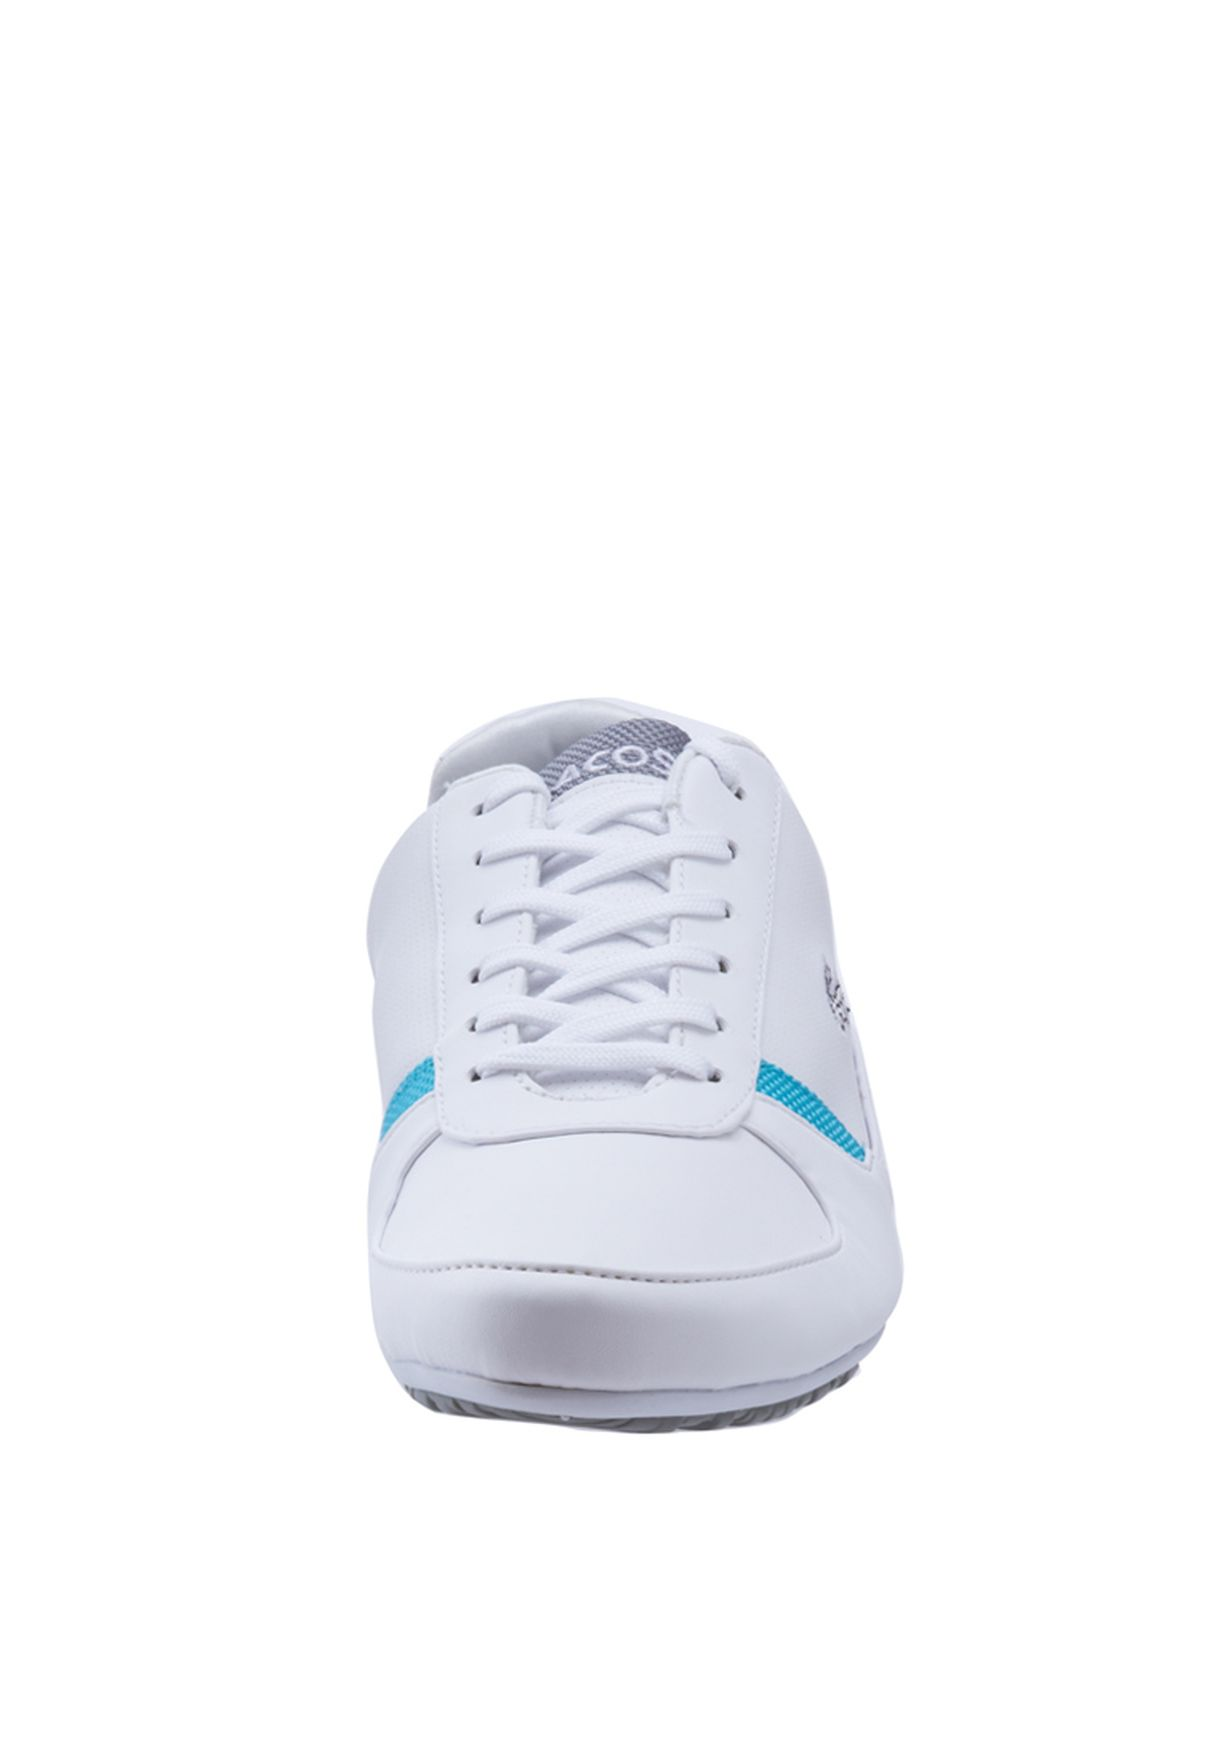 38c51454fad588 Shop Lacoste white Atherton PS Sneakers 24SPW2201-W56 for ...